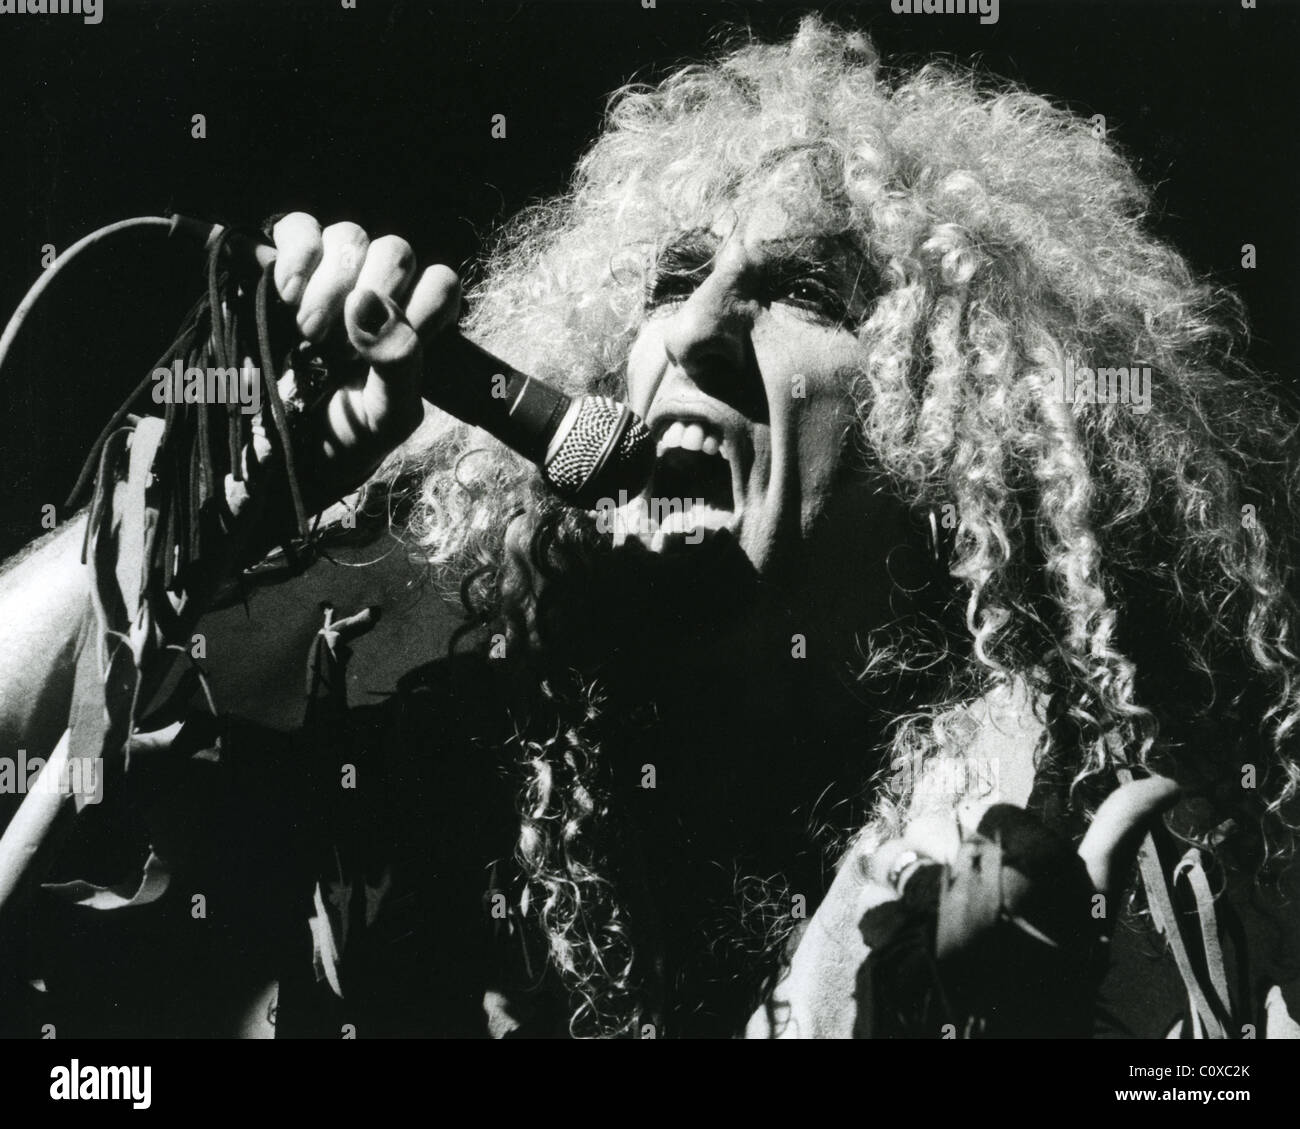 TWISTED SISTER - US rock group with Dee Snider in 1984. Photo Stephen Woodd - Stock Image